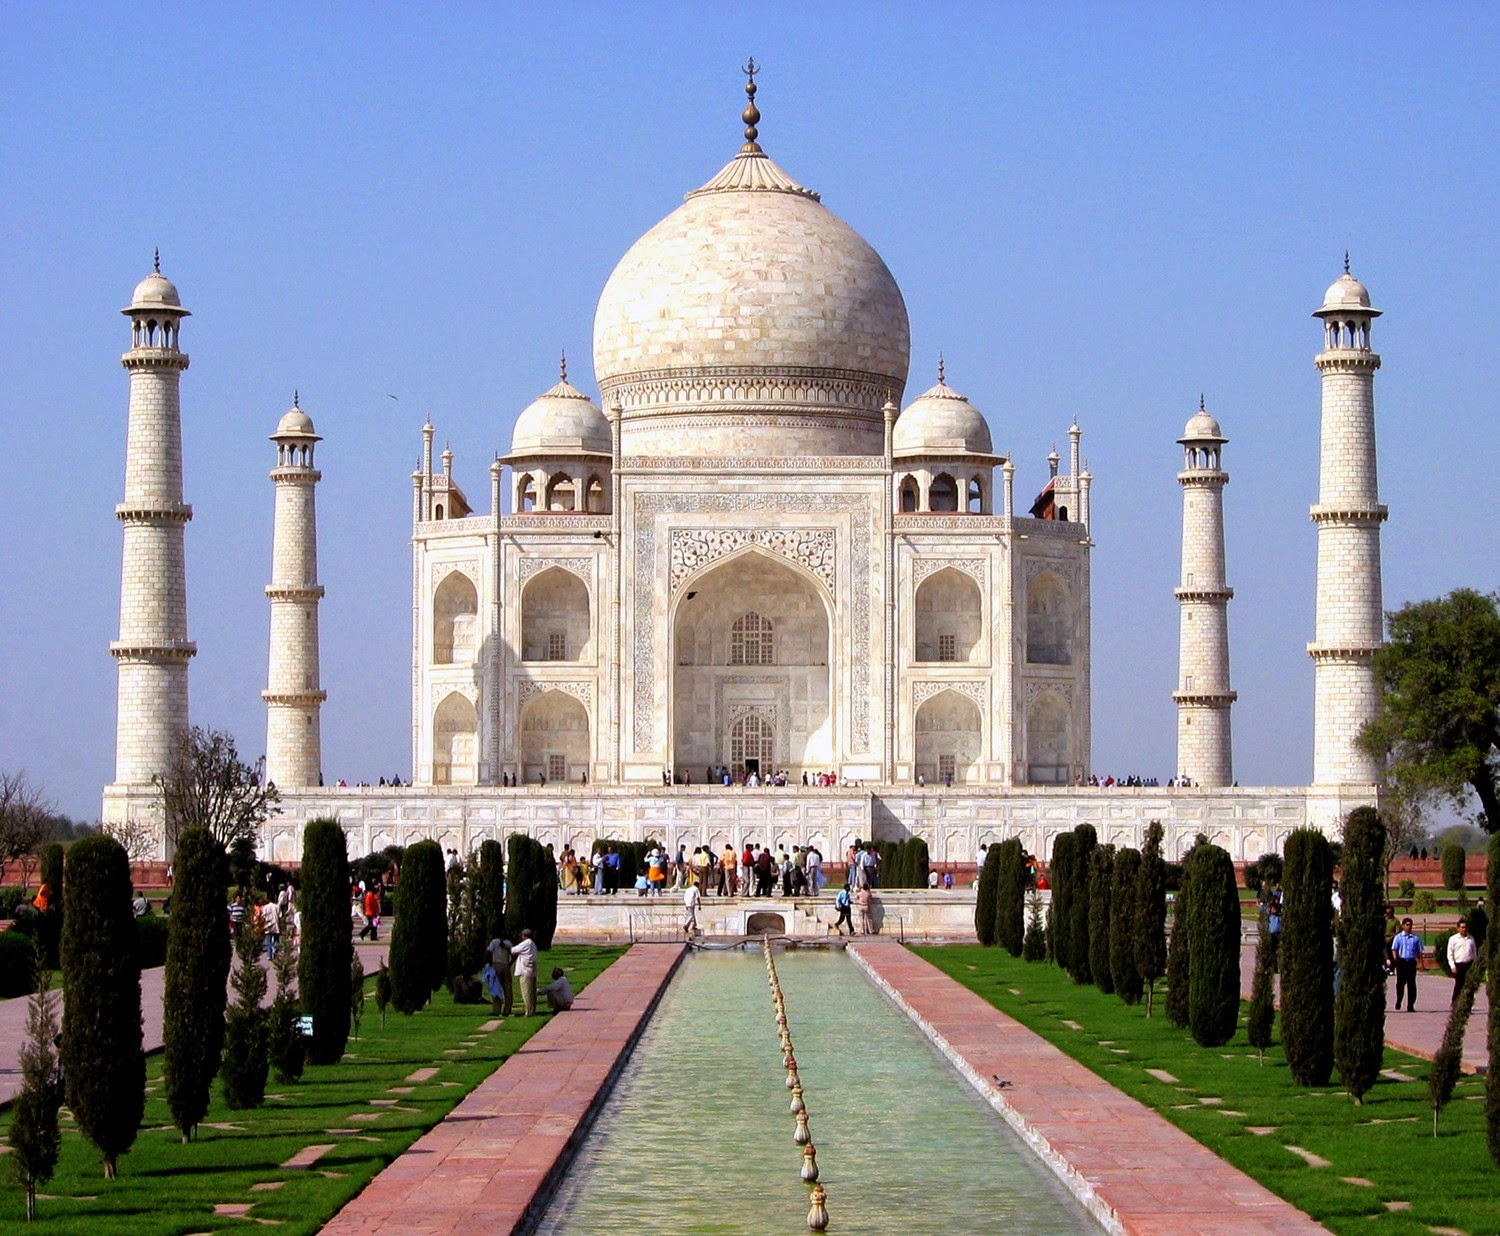 Four Wondrous Reasons to Visit the Taj Mahal